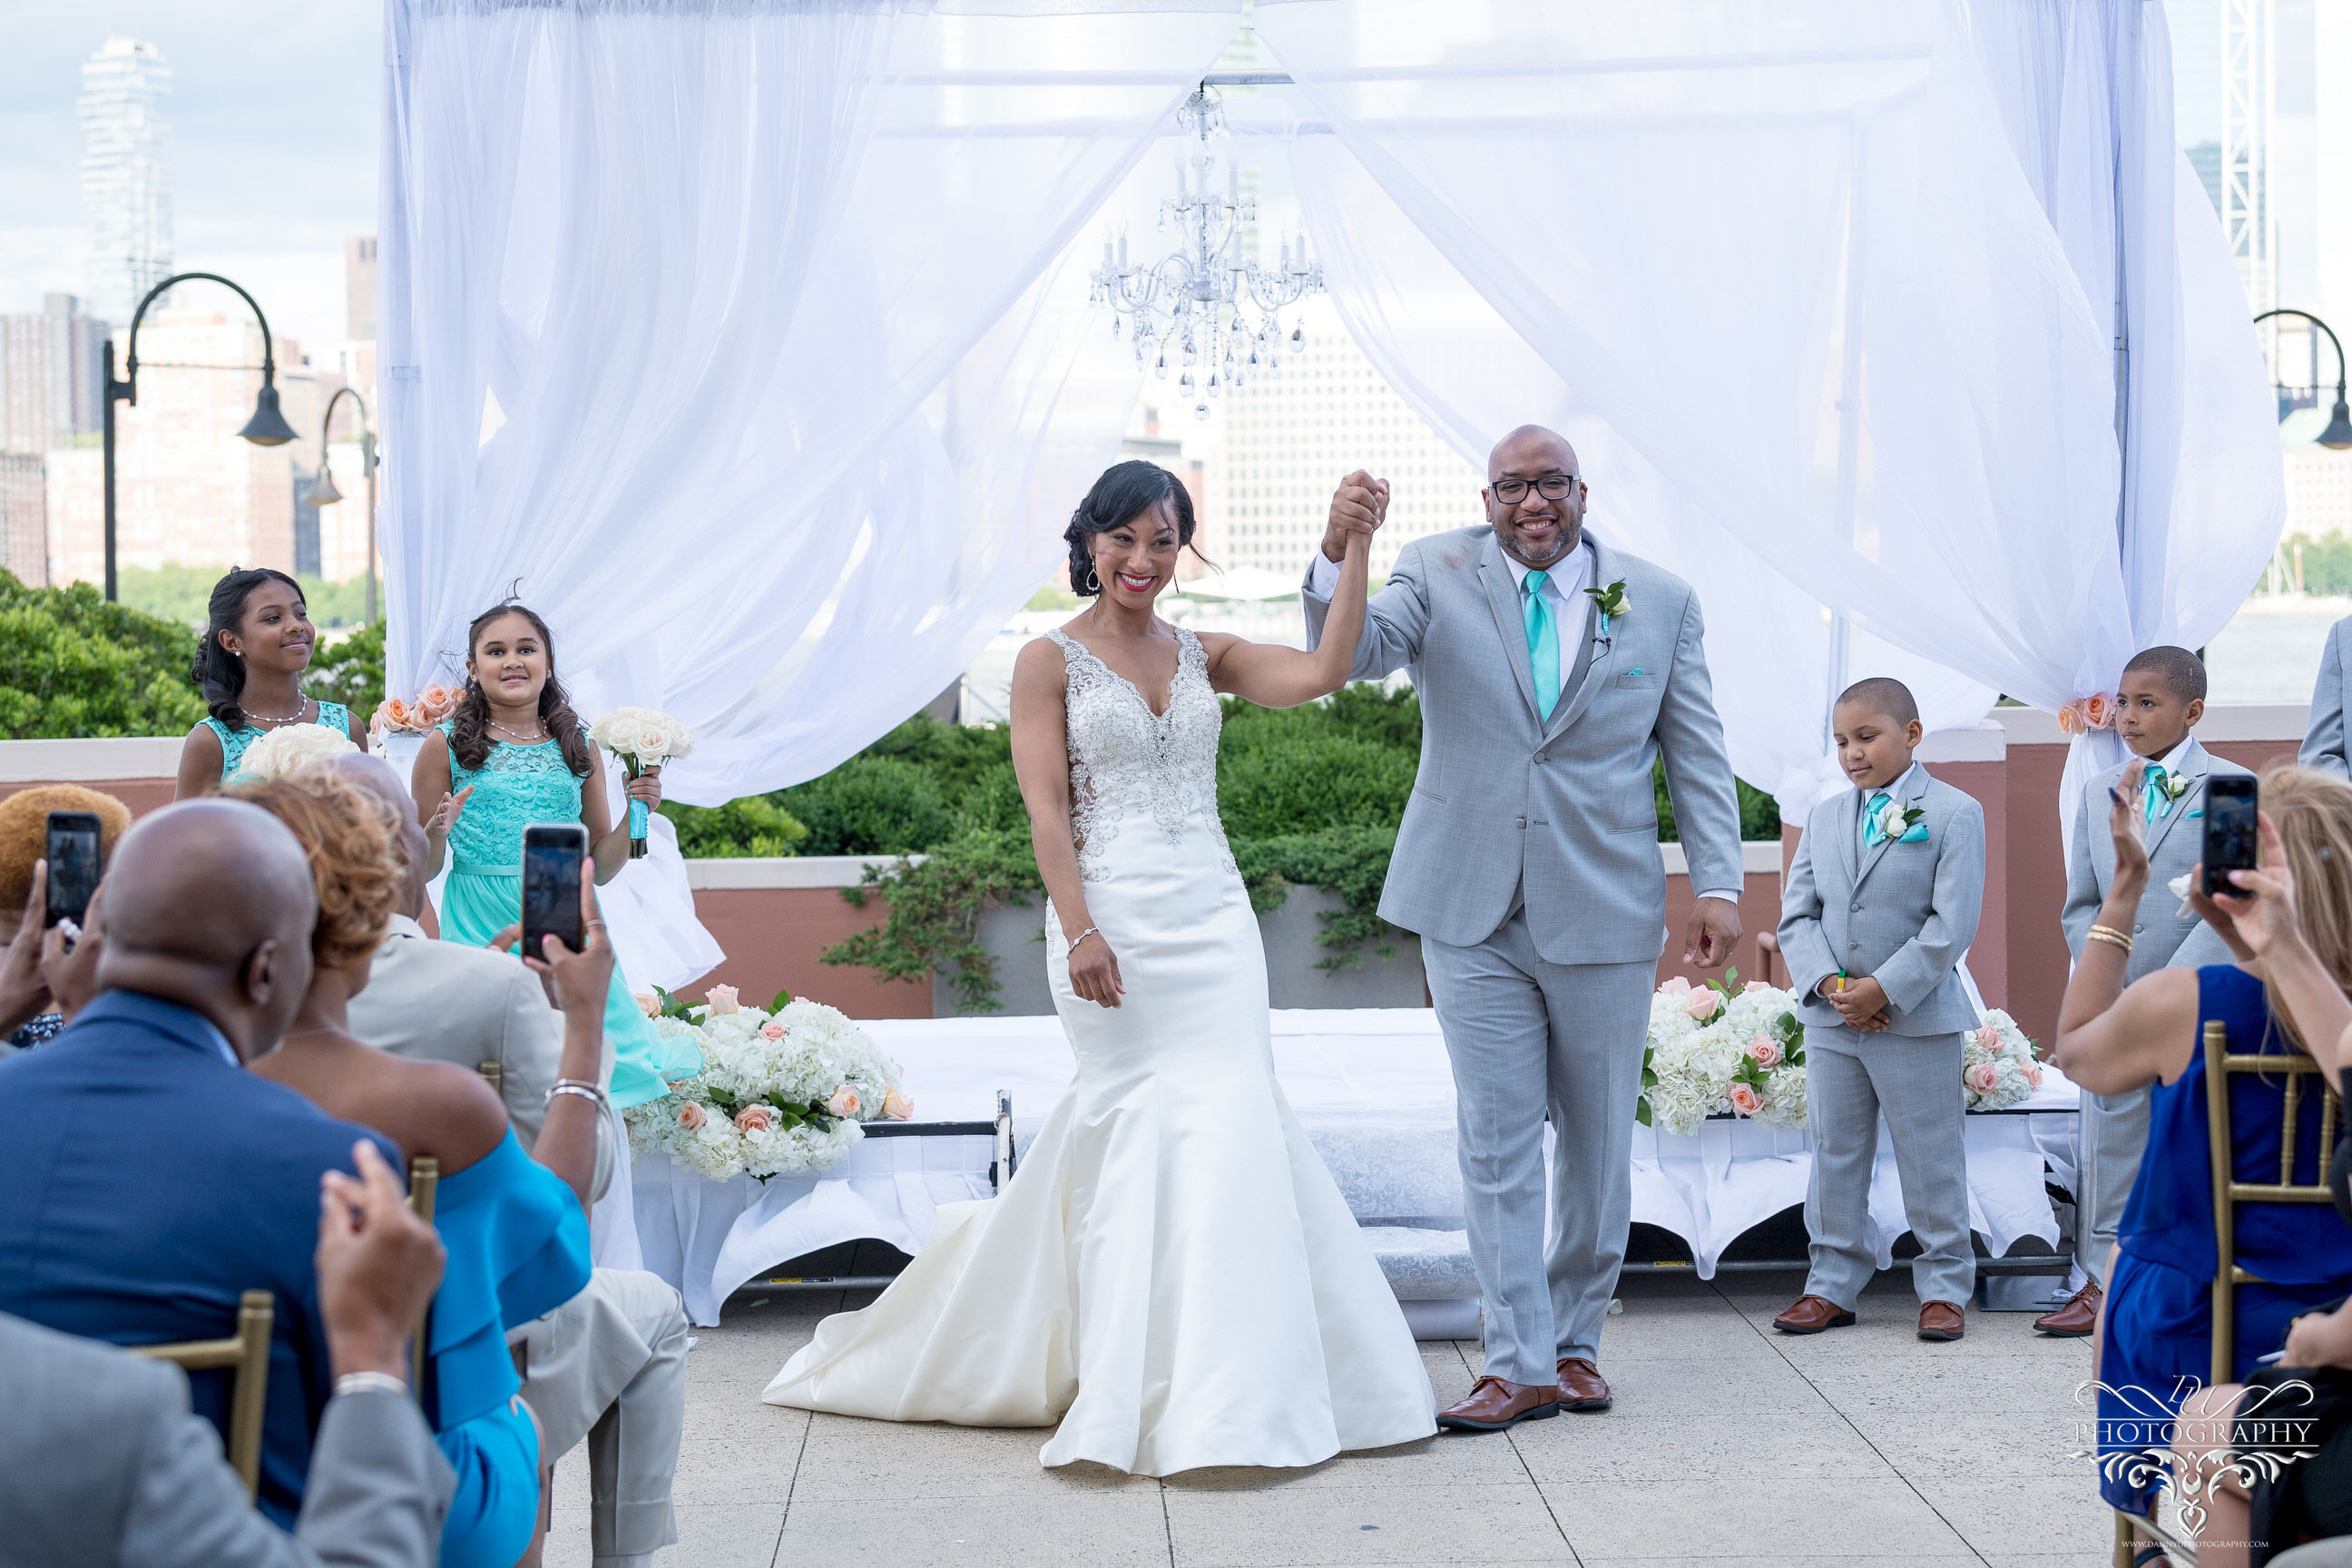 Hyatt Regency Jersey City On The Hudson Wedding That Provided Me With A Beautiful Cityline Backdrop During Ceremony And Bride Groom Session